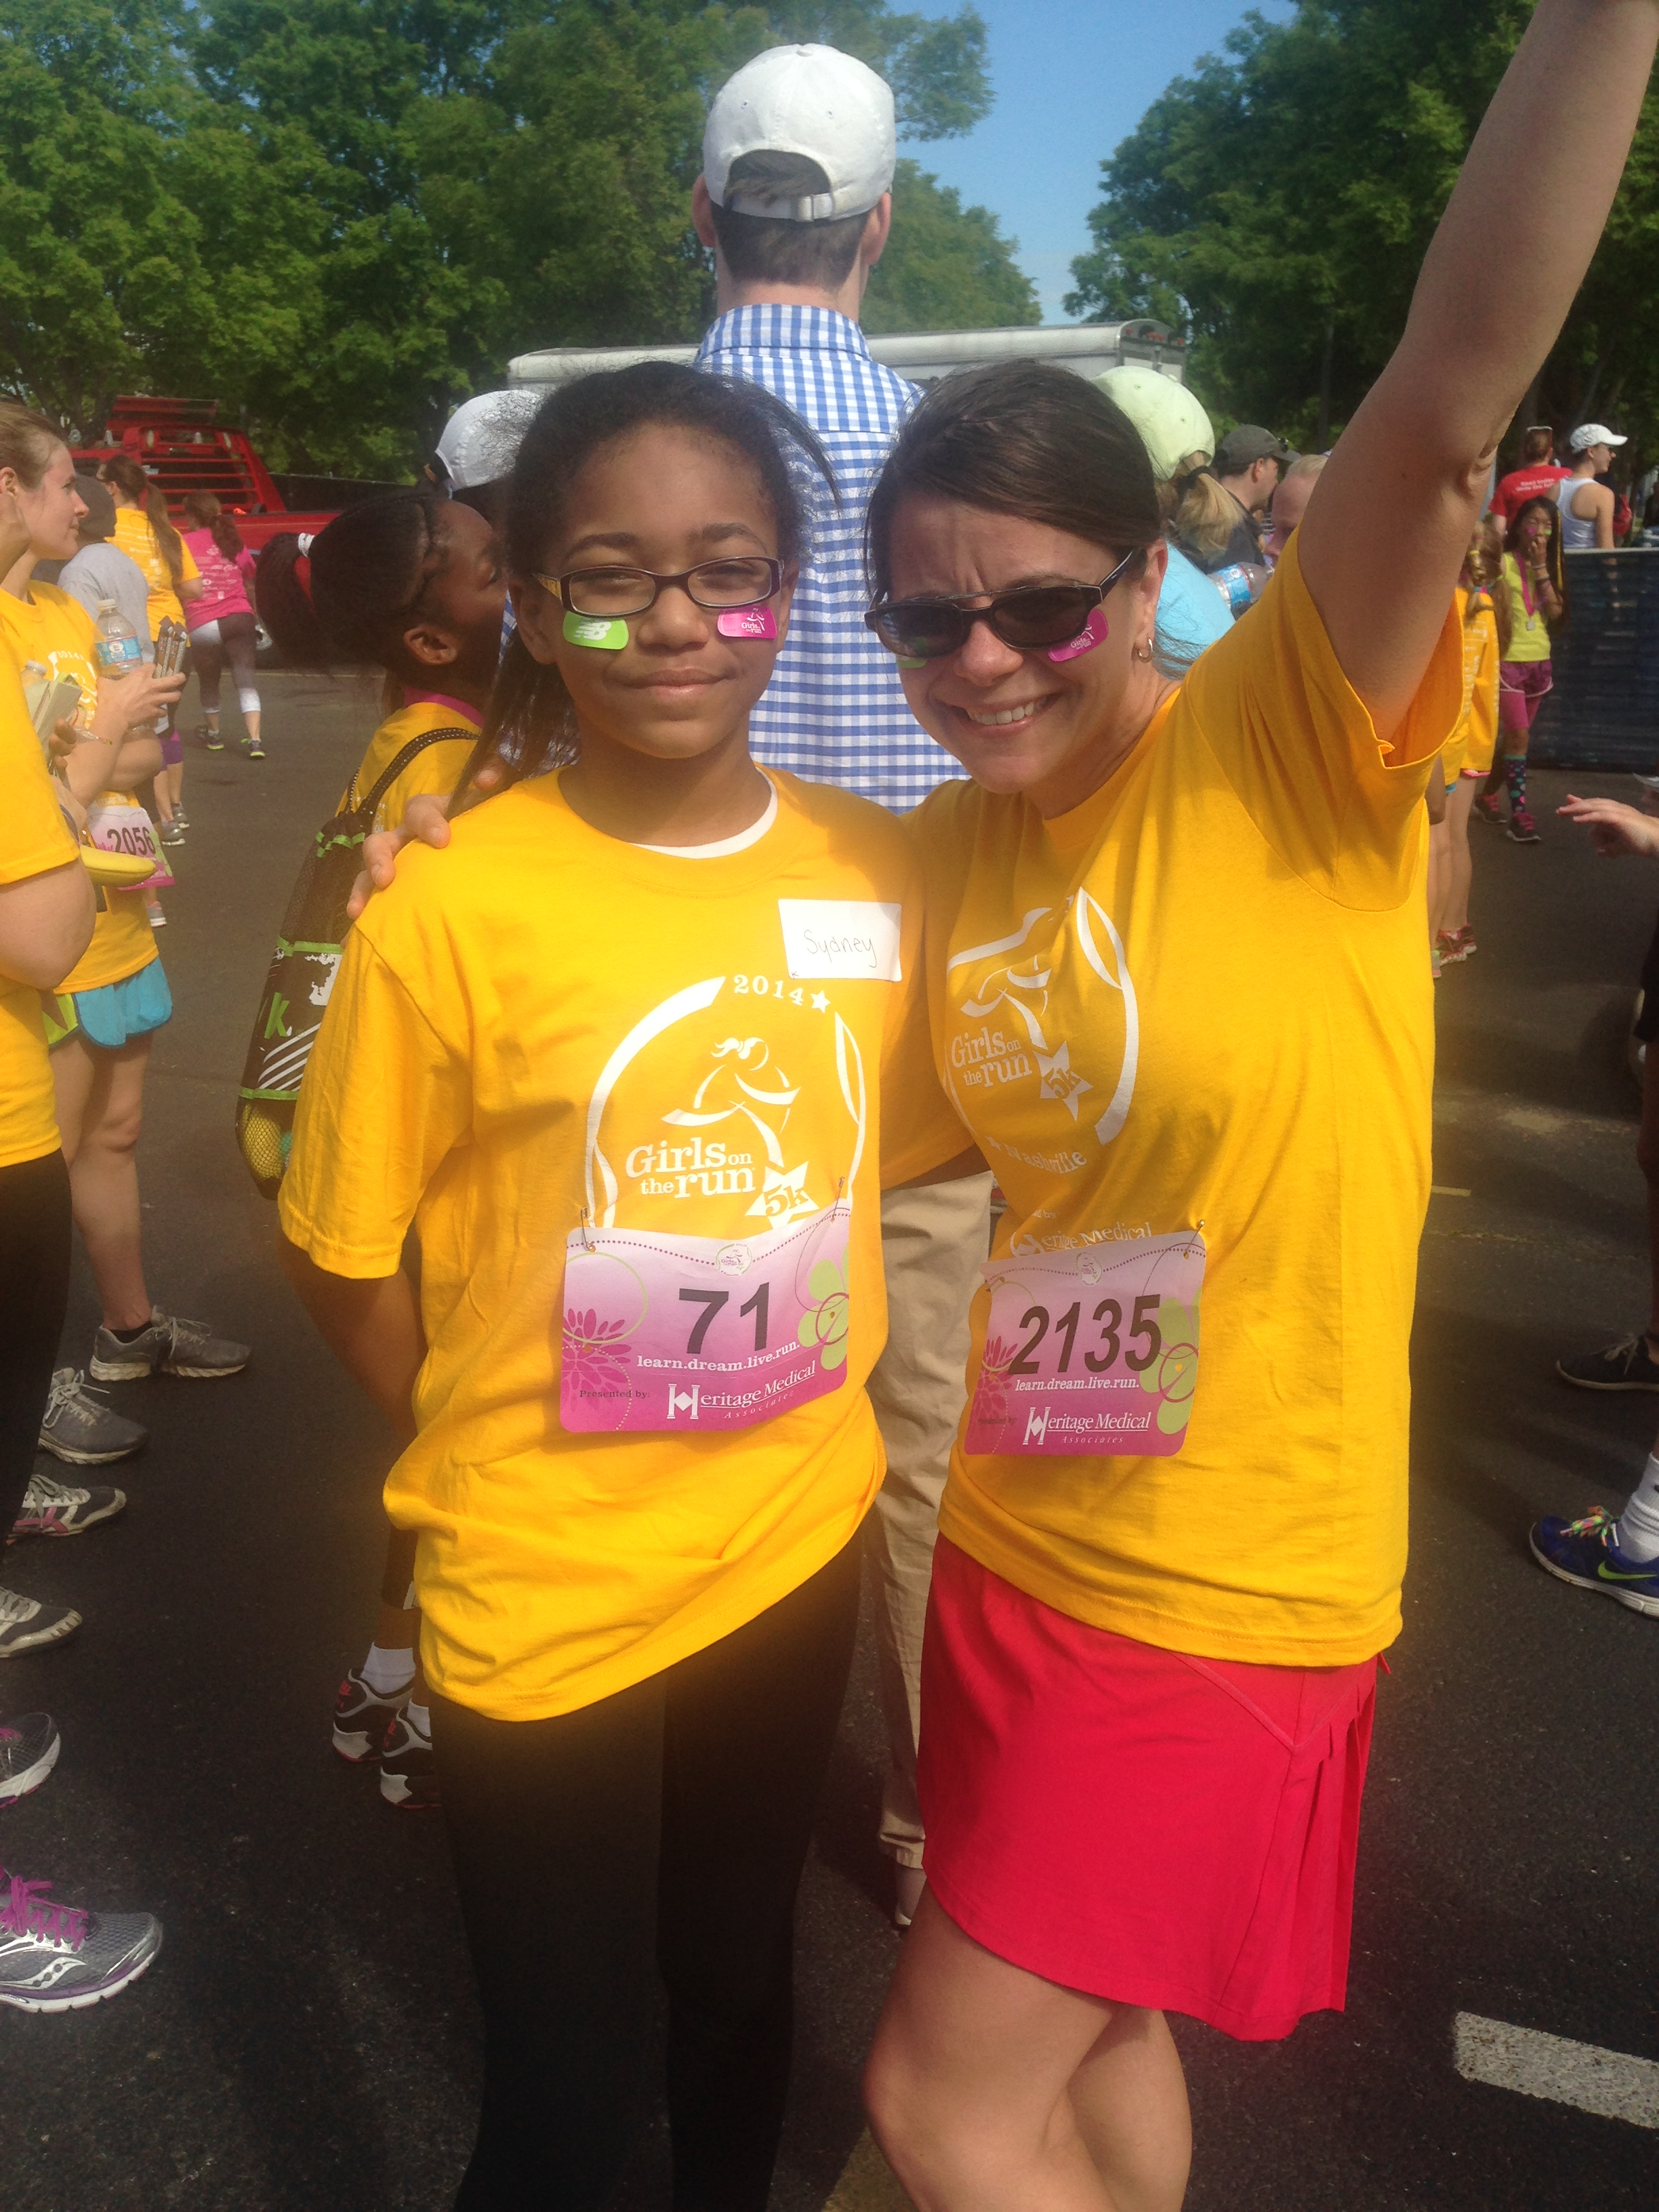 Kathleen celebrating with the girl she coached as a part of Girls on the Run